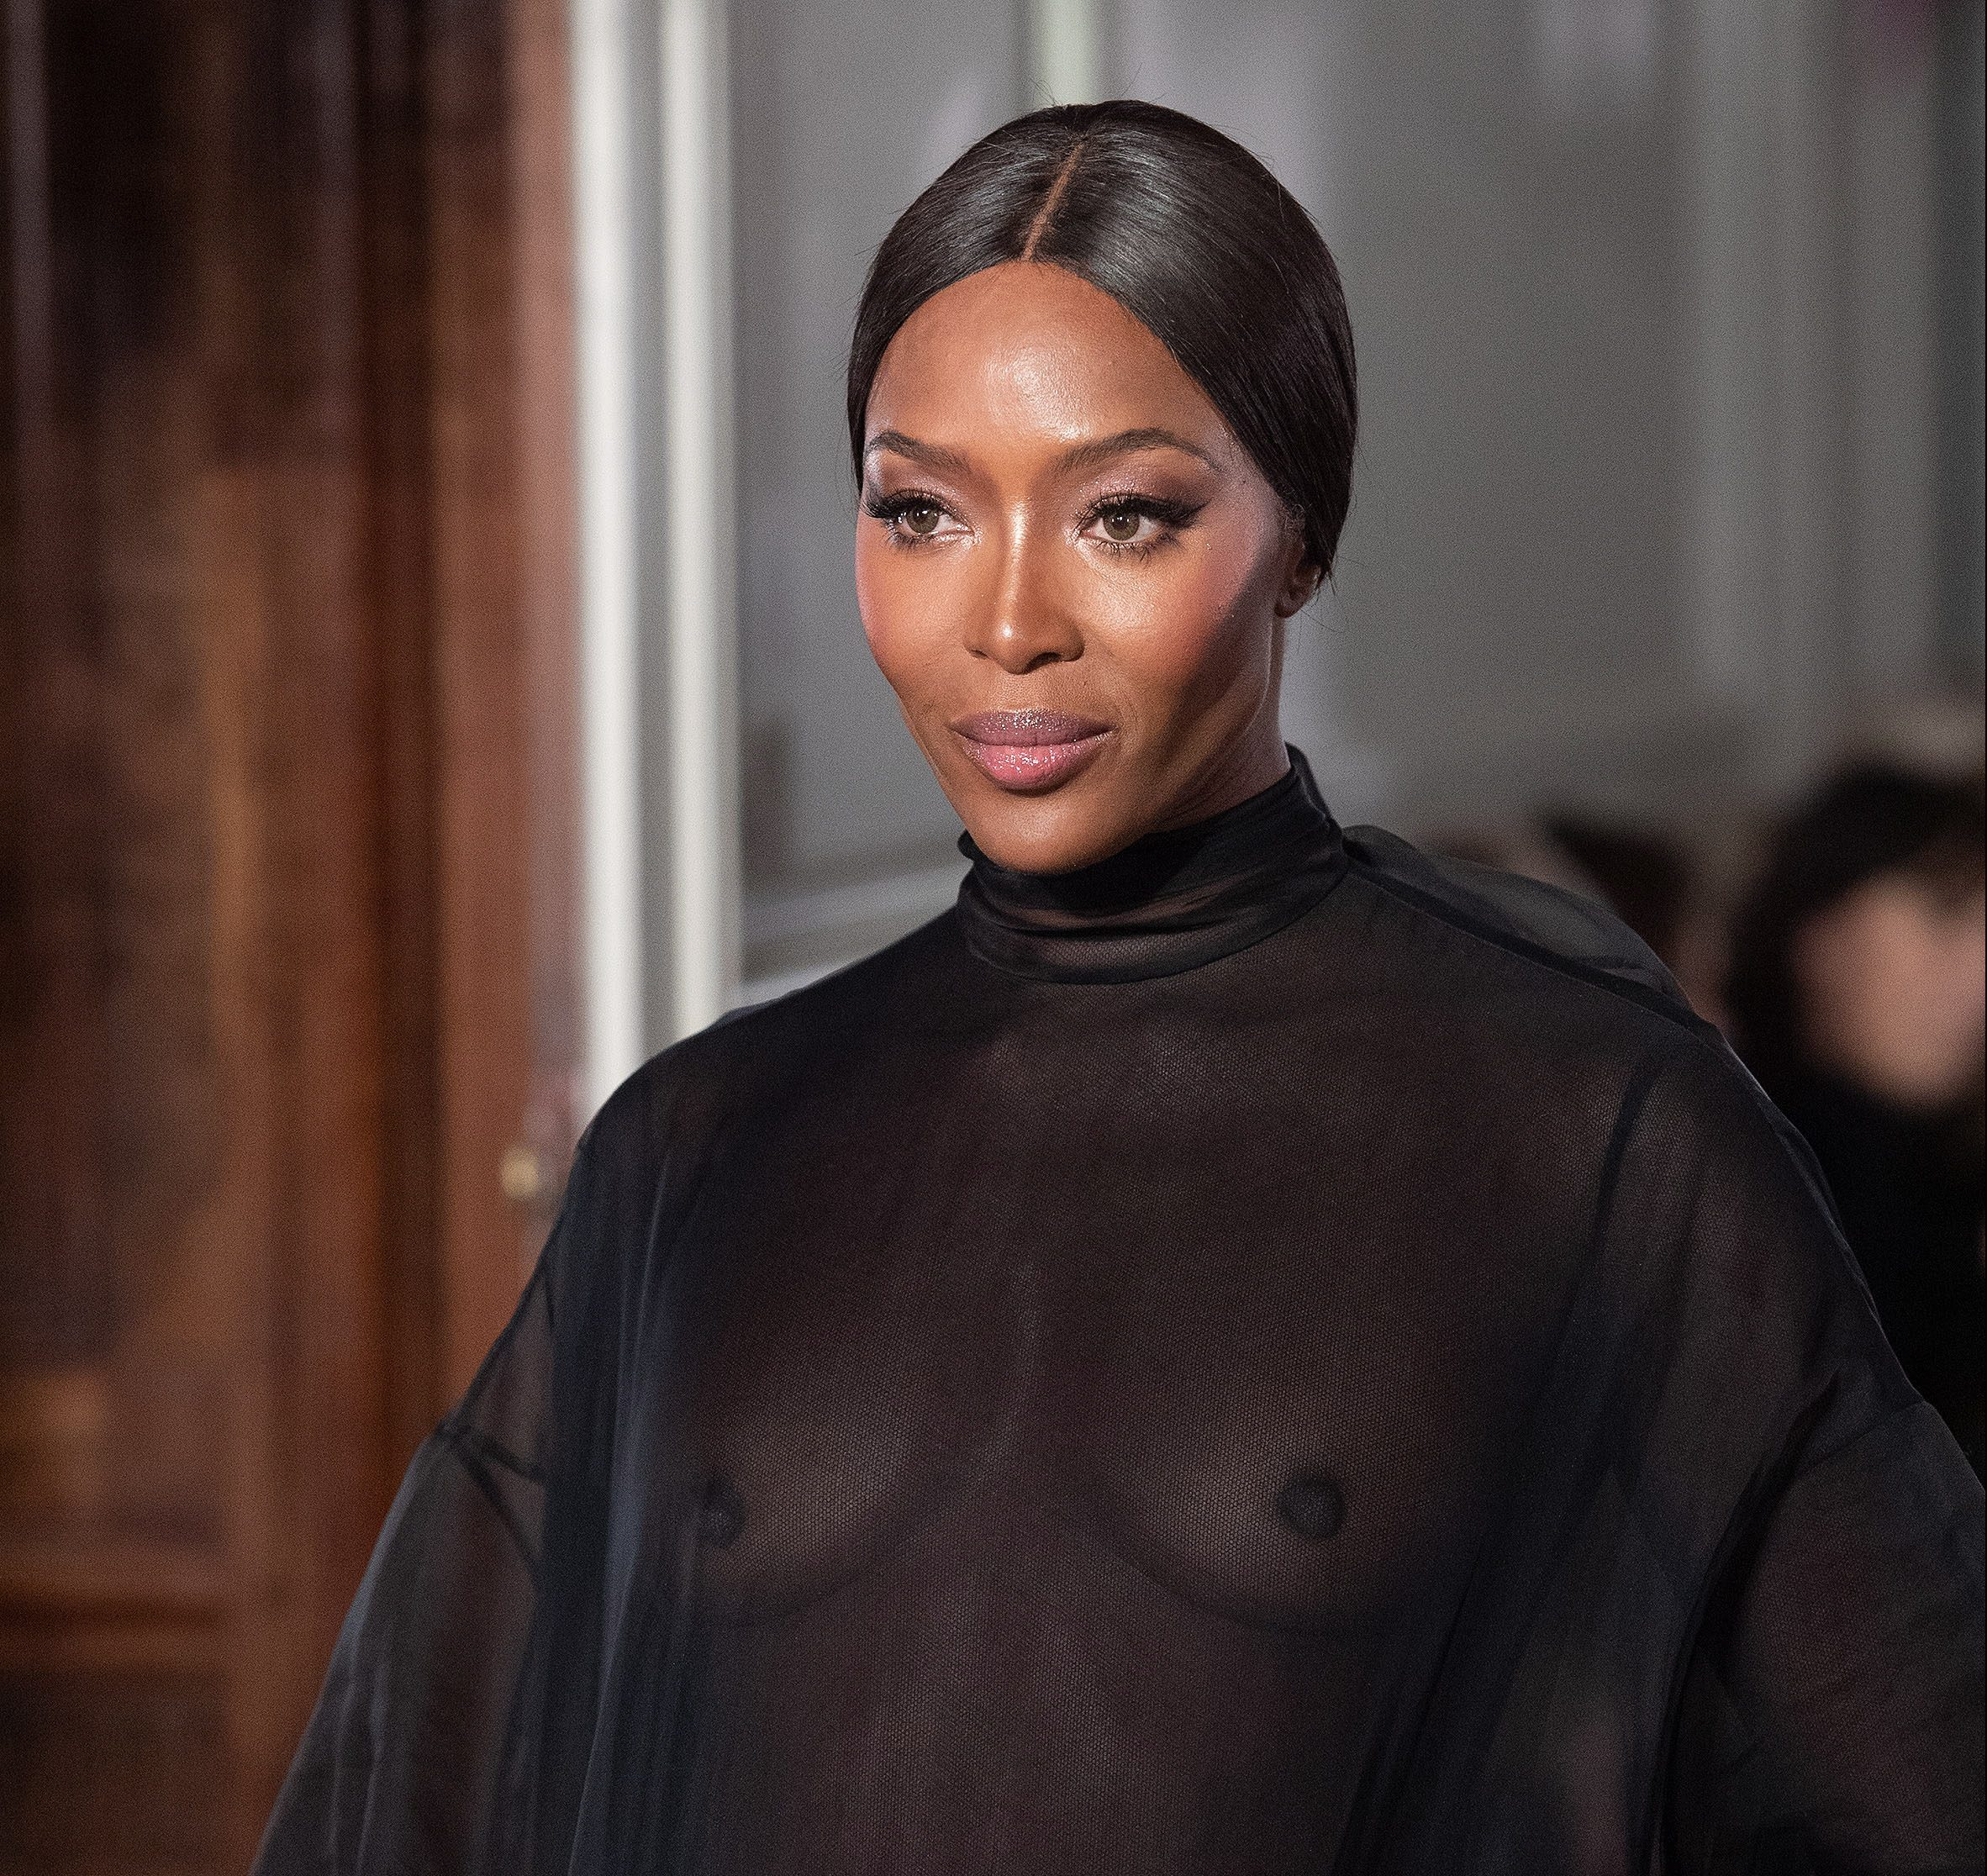 epa07313546 British model Naomi Campbell presents a creation from the Spring/Summer 2019 Haute Couture collection by Valentino fashion house during the Paris Fashion Week, in Paris, France, 23 January 2019. The presentation of the Haute Couture collections runs from 21 to 24 January 2019.  EPA/CAROLINE BLUMBERG